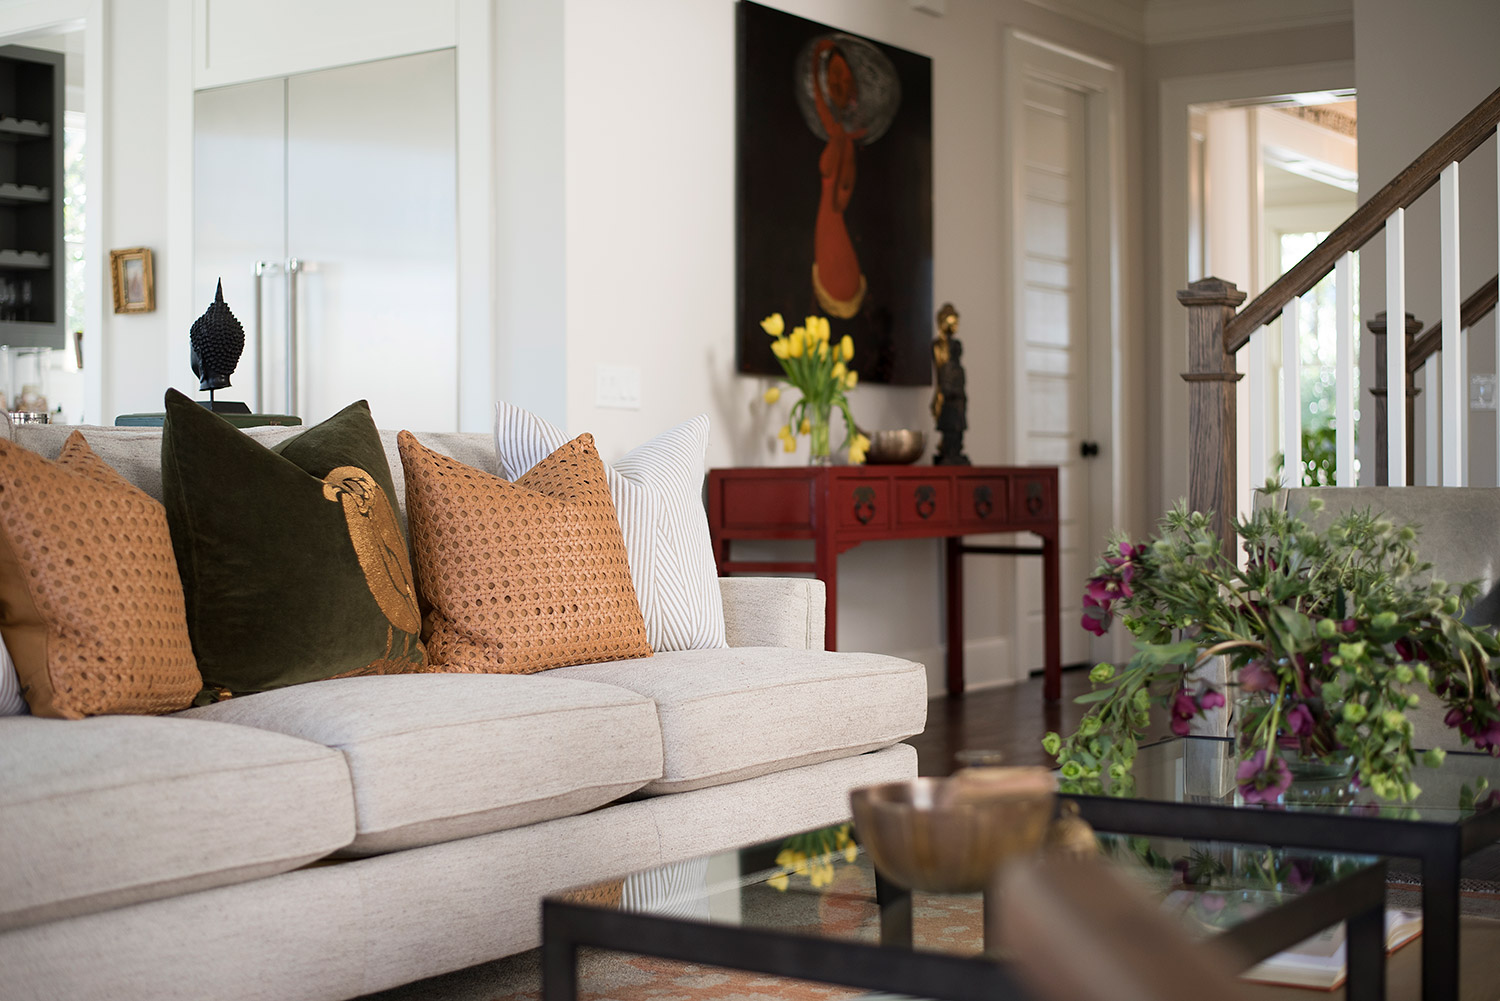 Transitional living room with beige sofa and glass coffee tables